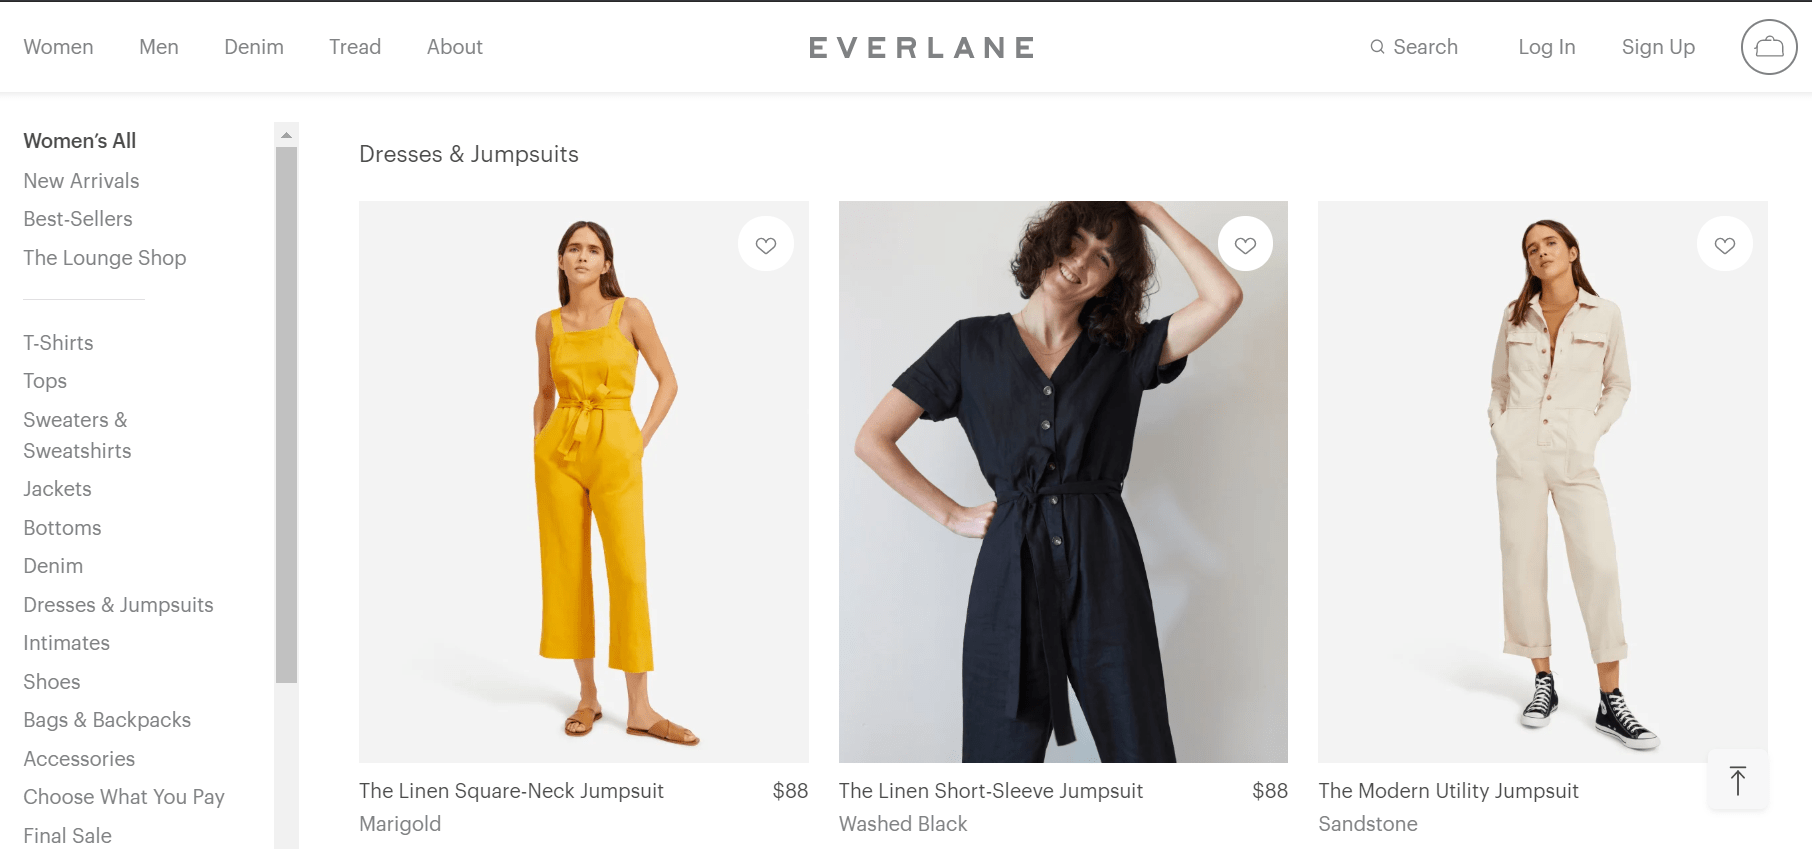 Screenshot of Everlane's website in the Women's section